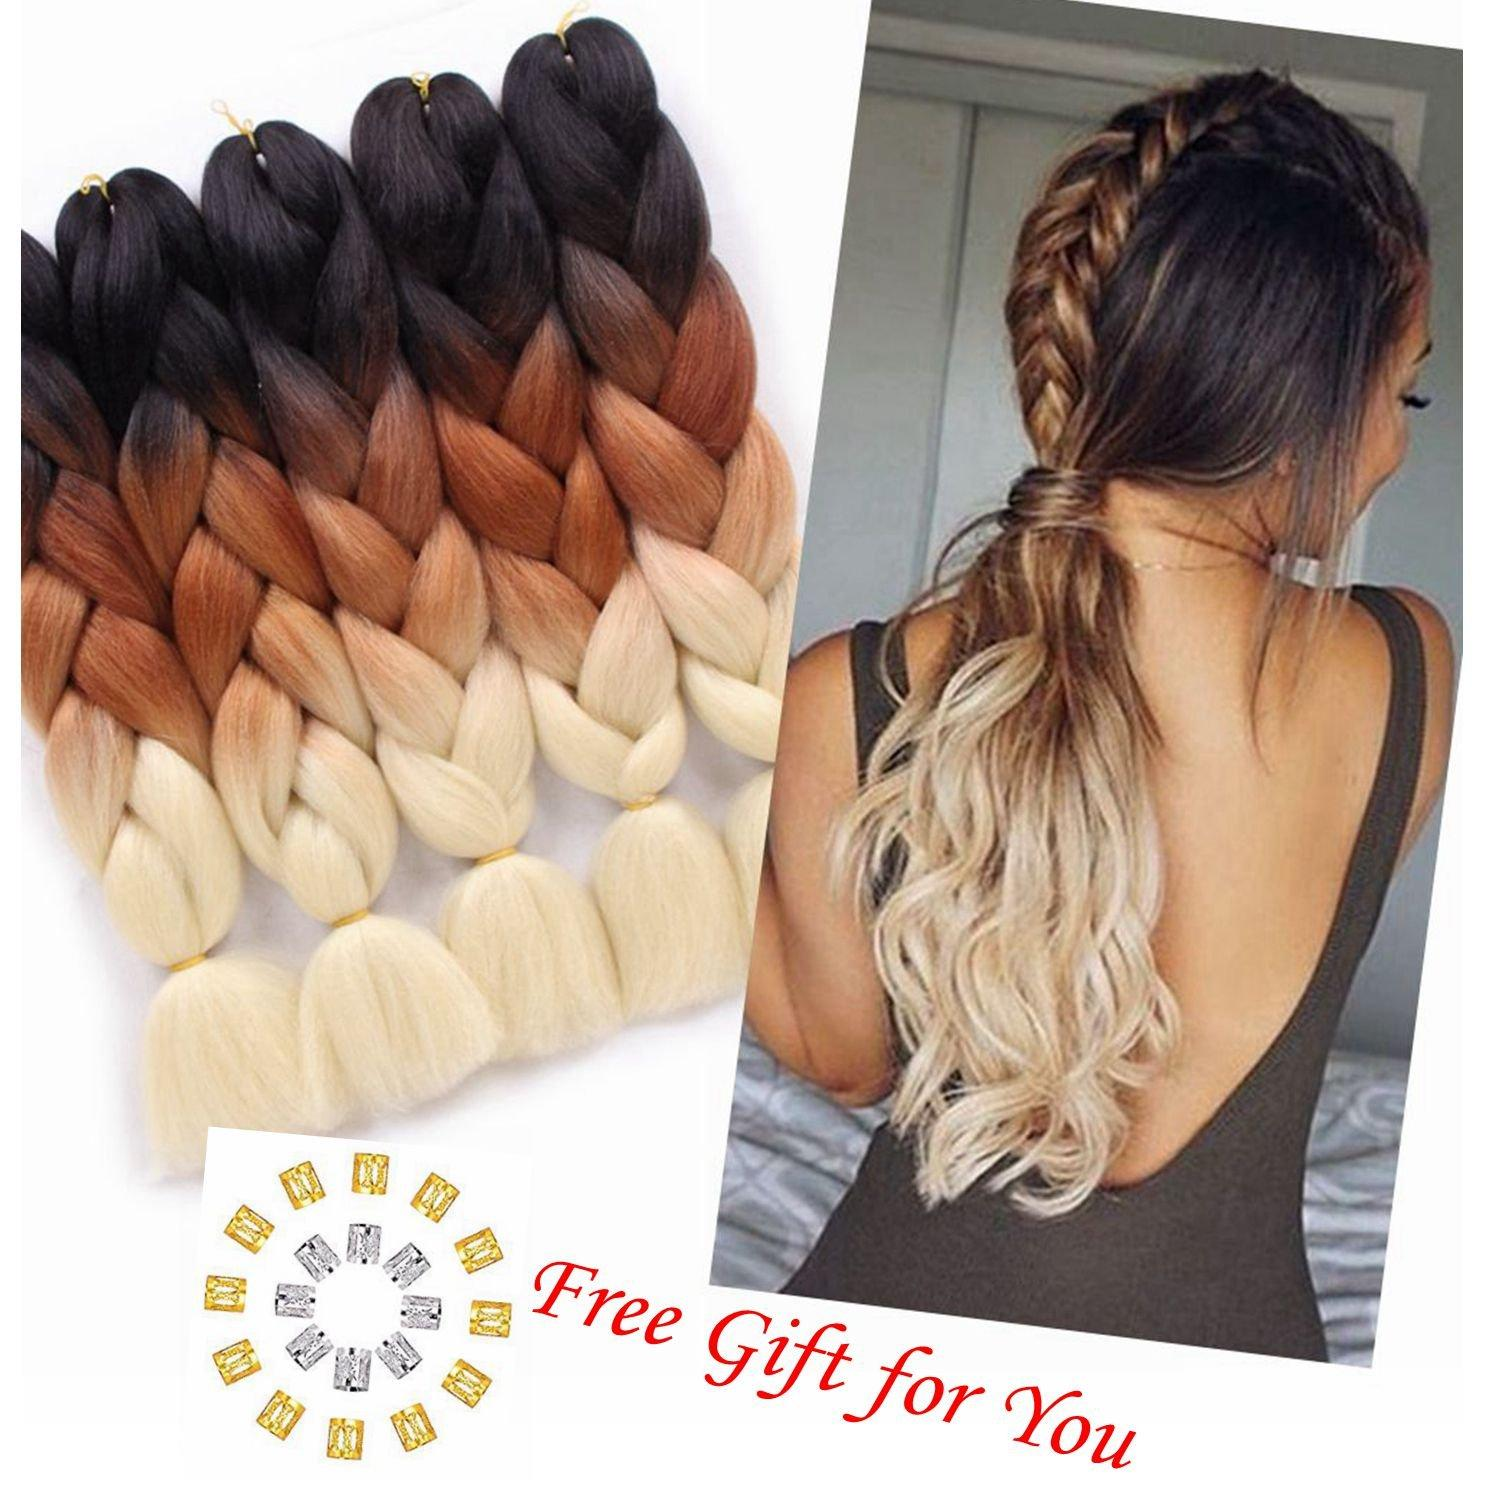 """24"""" 1pcs/Pack 100g/pc Afro Synthetic Jumbo Braids Ombre Kanekalon Fiber Hair Extension for Braiding Hairstyles (Black/Brown/613)"""